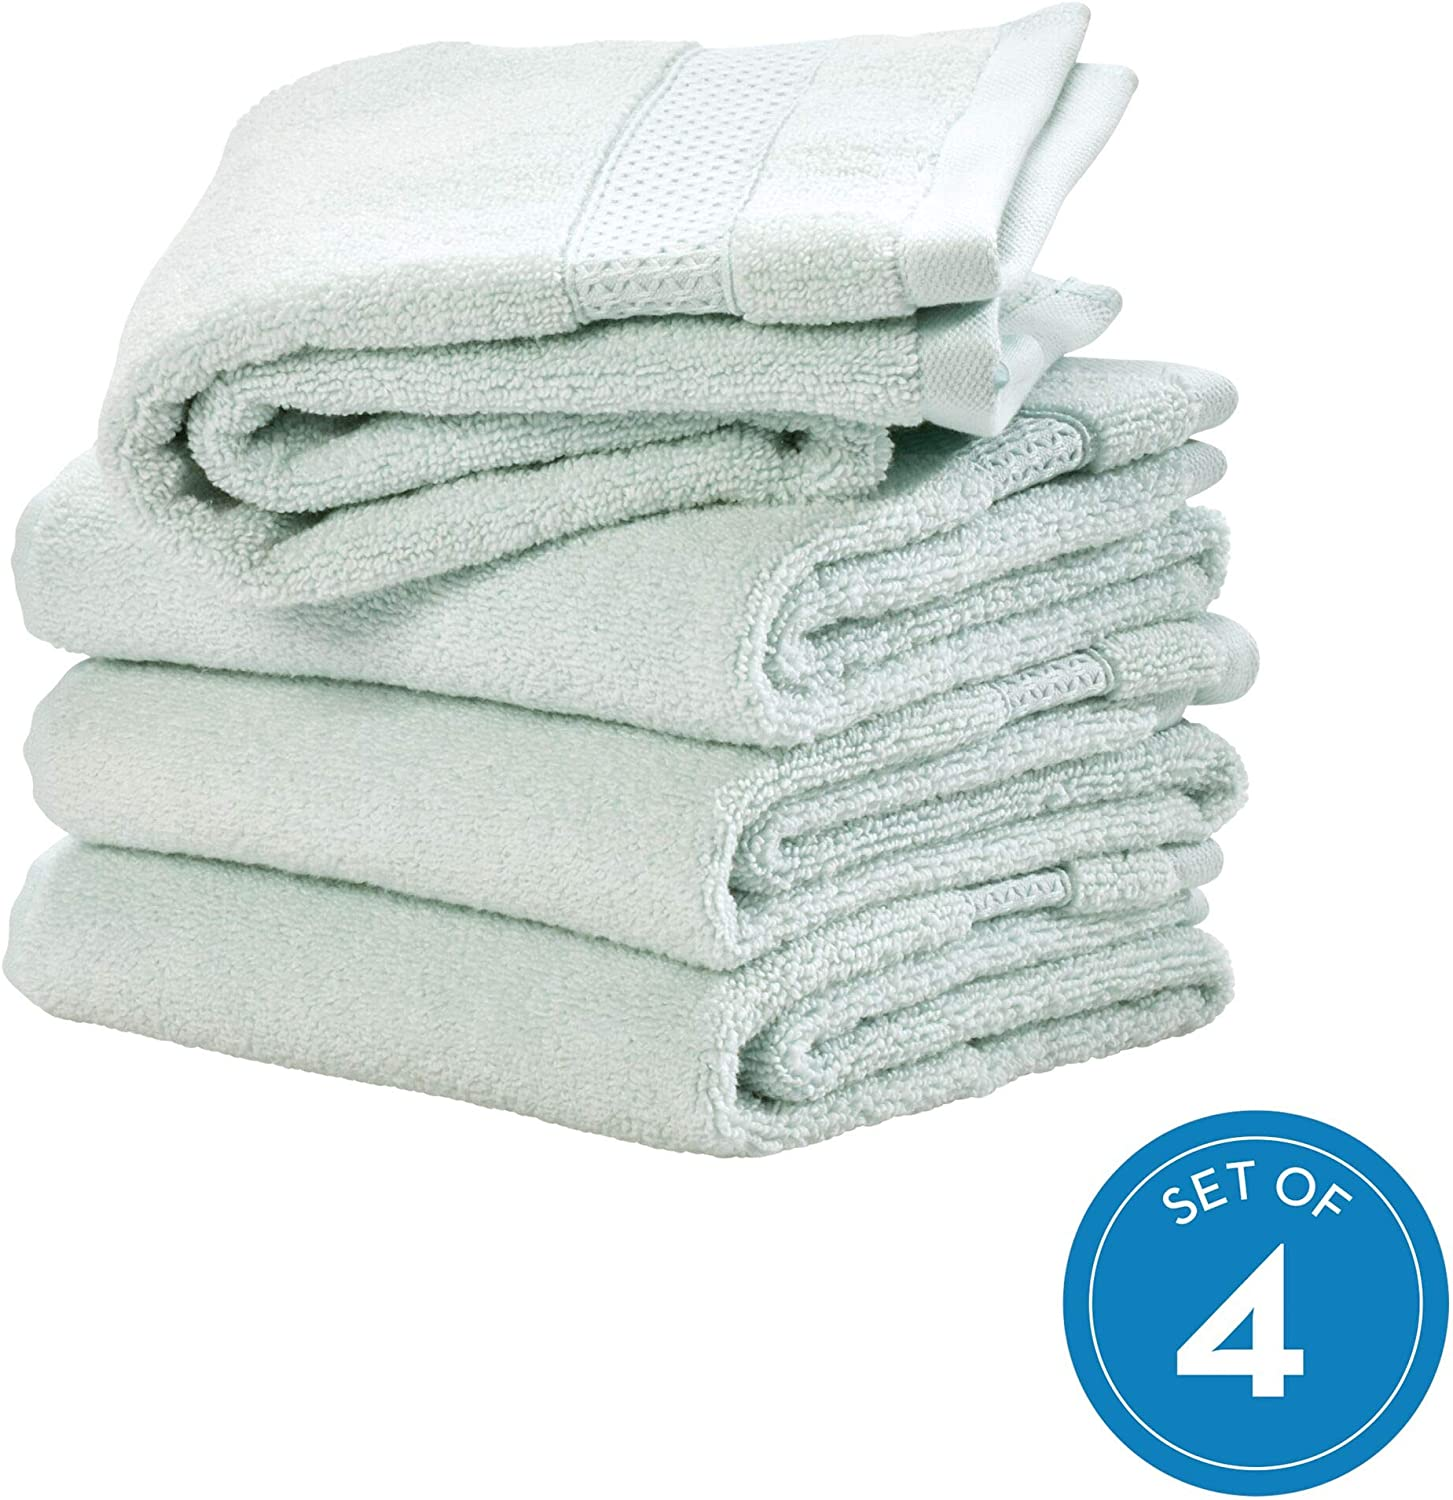 iDesign Spa Hand Towel with Hanging Loop 100/% Cotton Soft Absorbent Machine Was